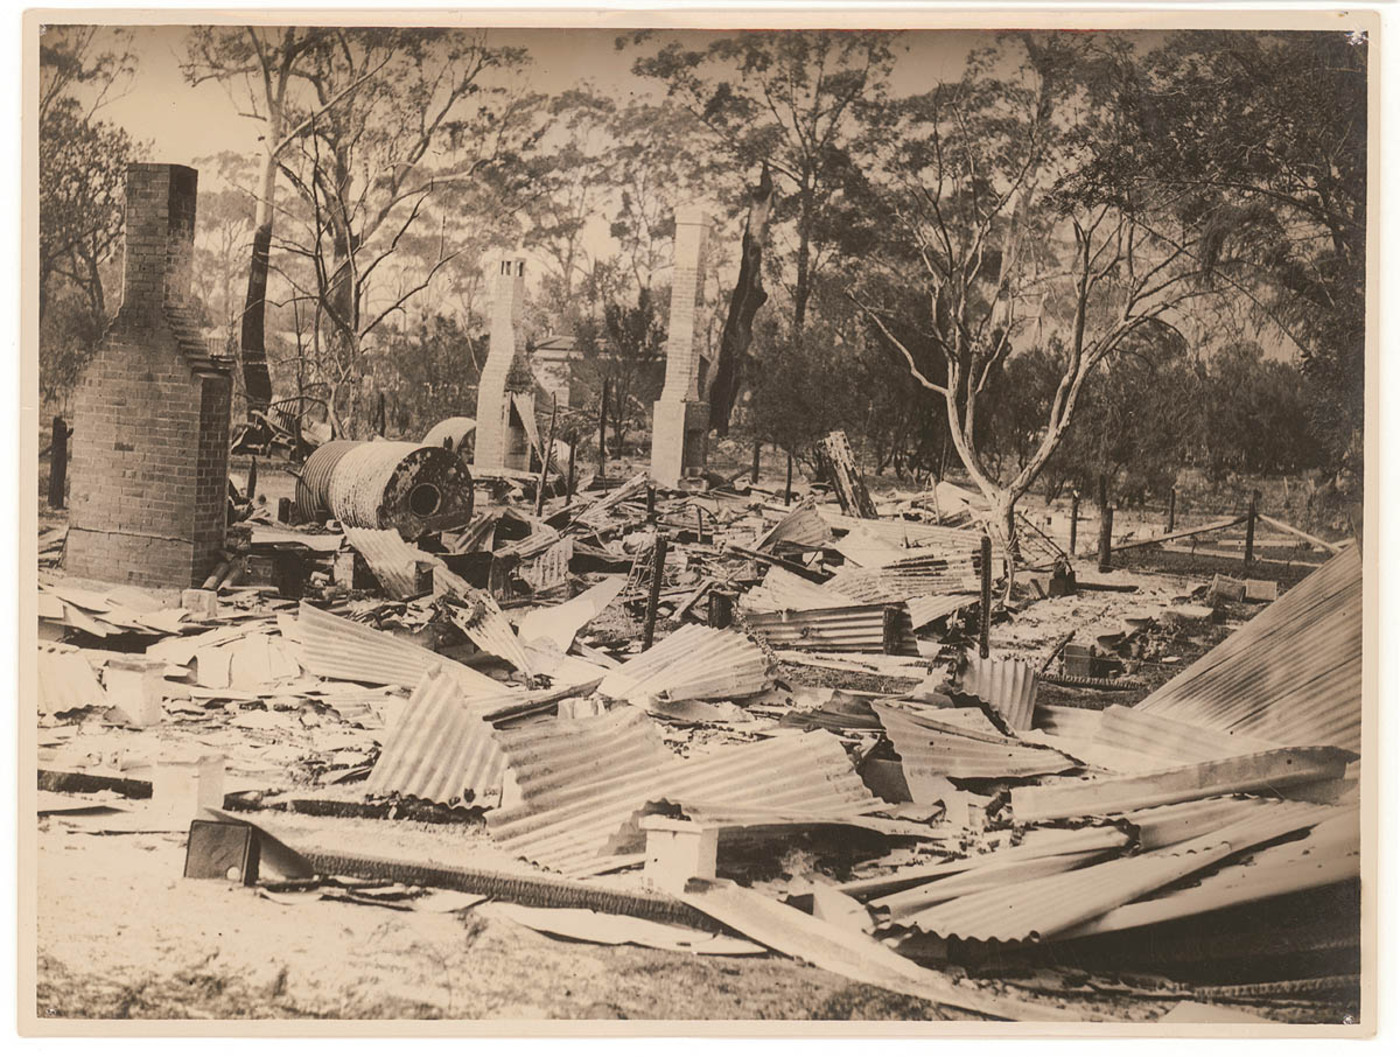 House destroyed by bushfire, New South Wales, late 1920's / photographer Sam Hood